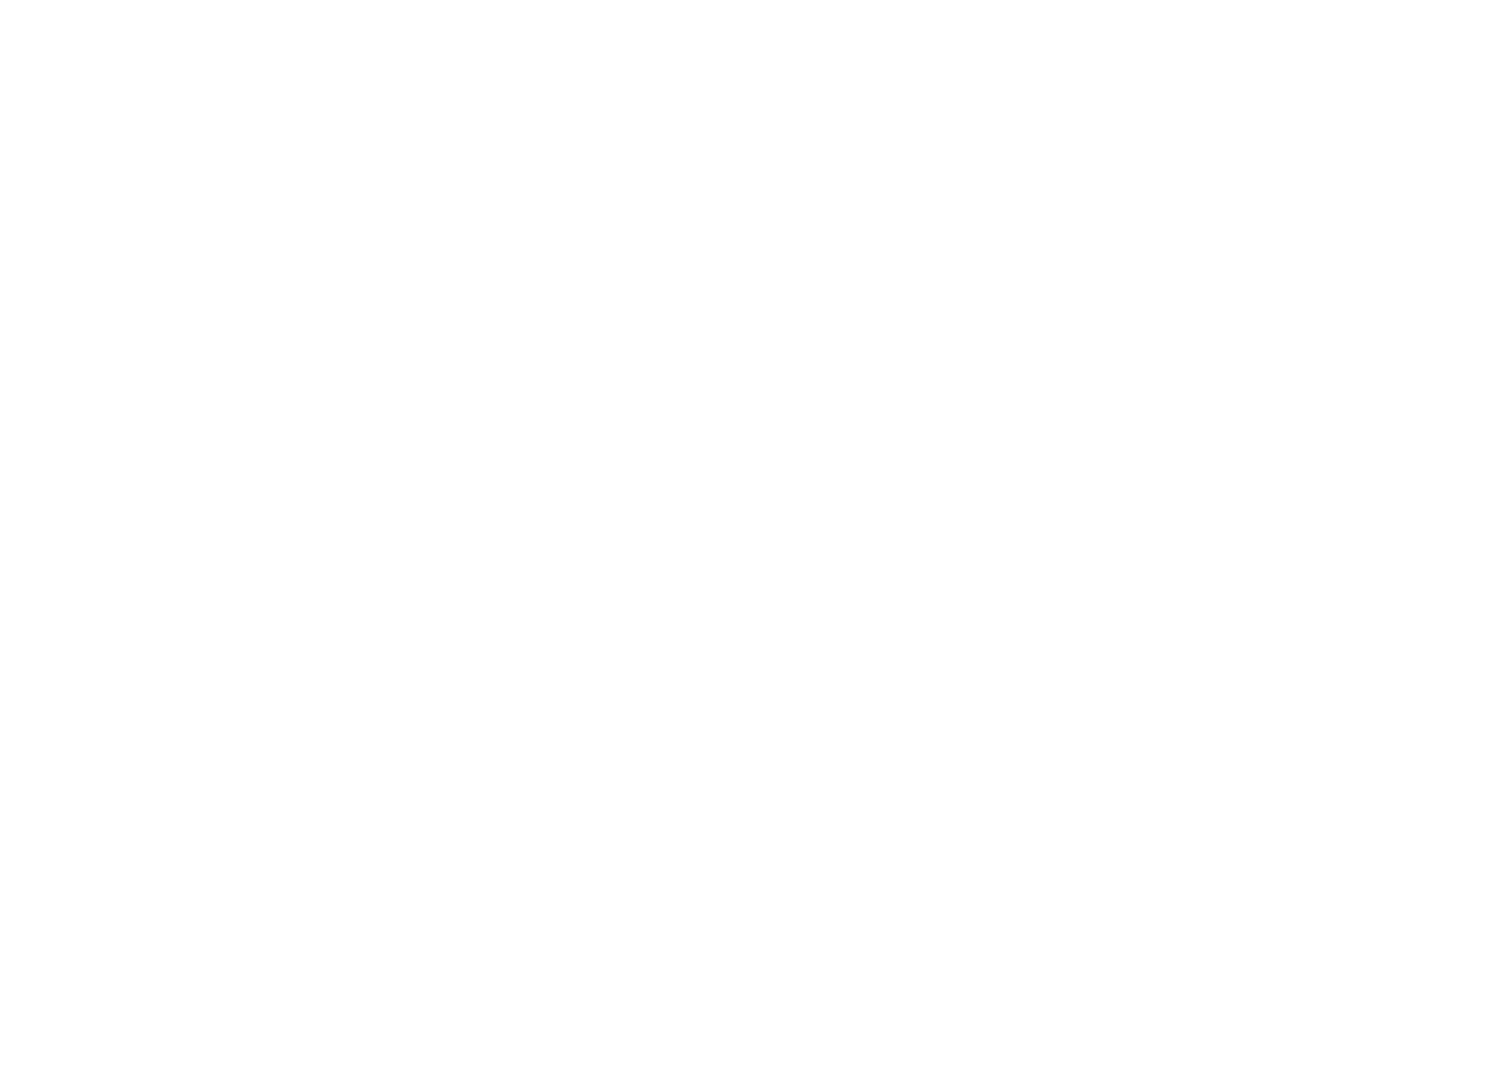 New Standard Manufacturing